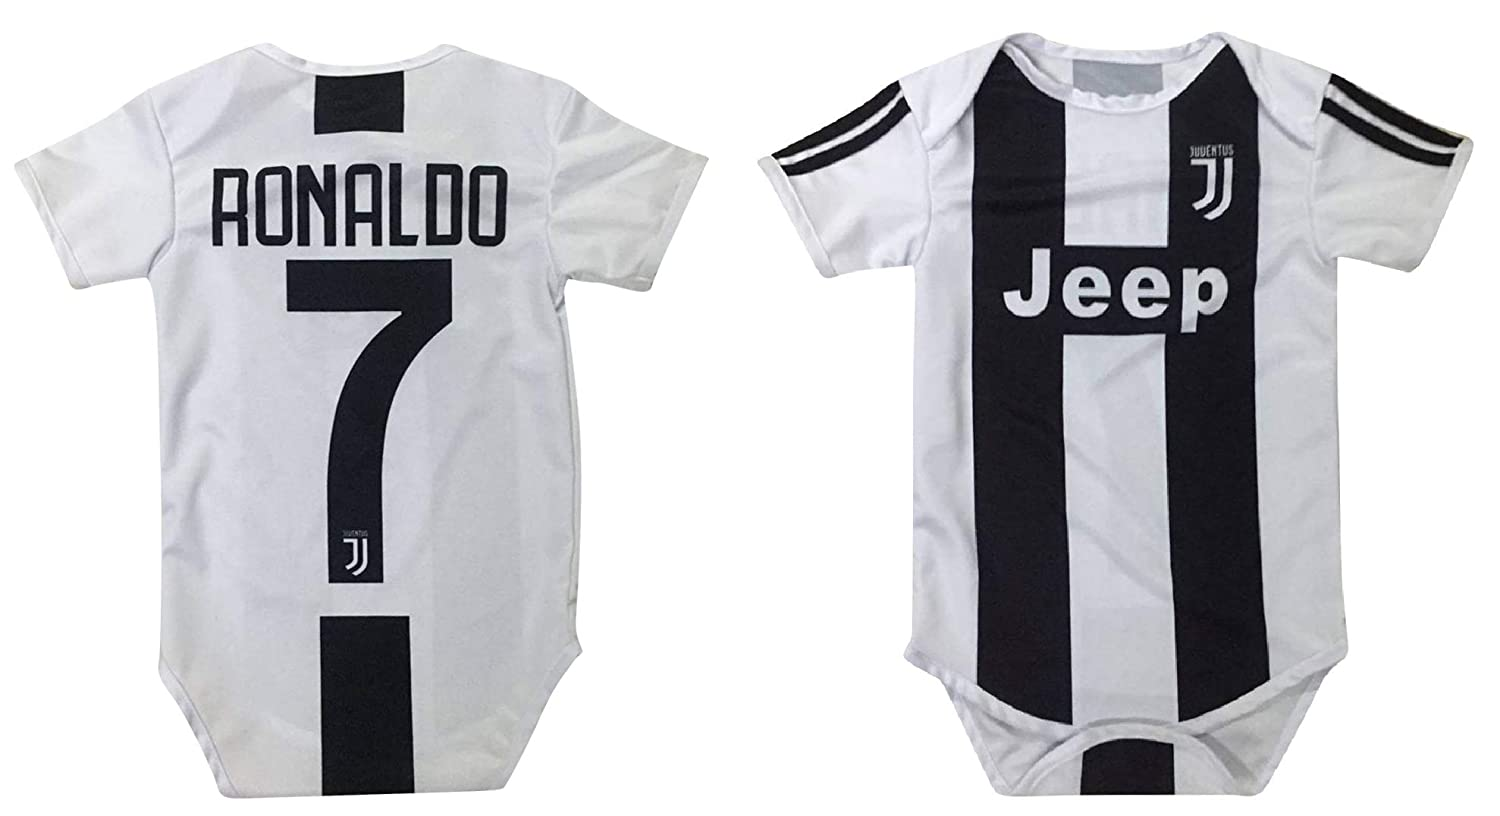 best website a7478 8d9f2 Kitbag Cristiano Ronaldo Juventus #7 Soccer Jersey Baby Romper Infant  Toddler Onesie Premium Quality